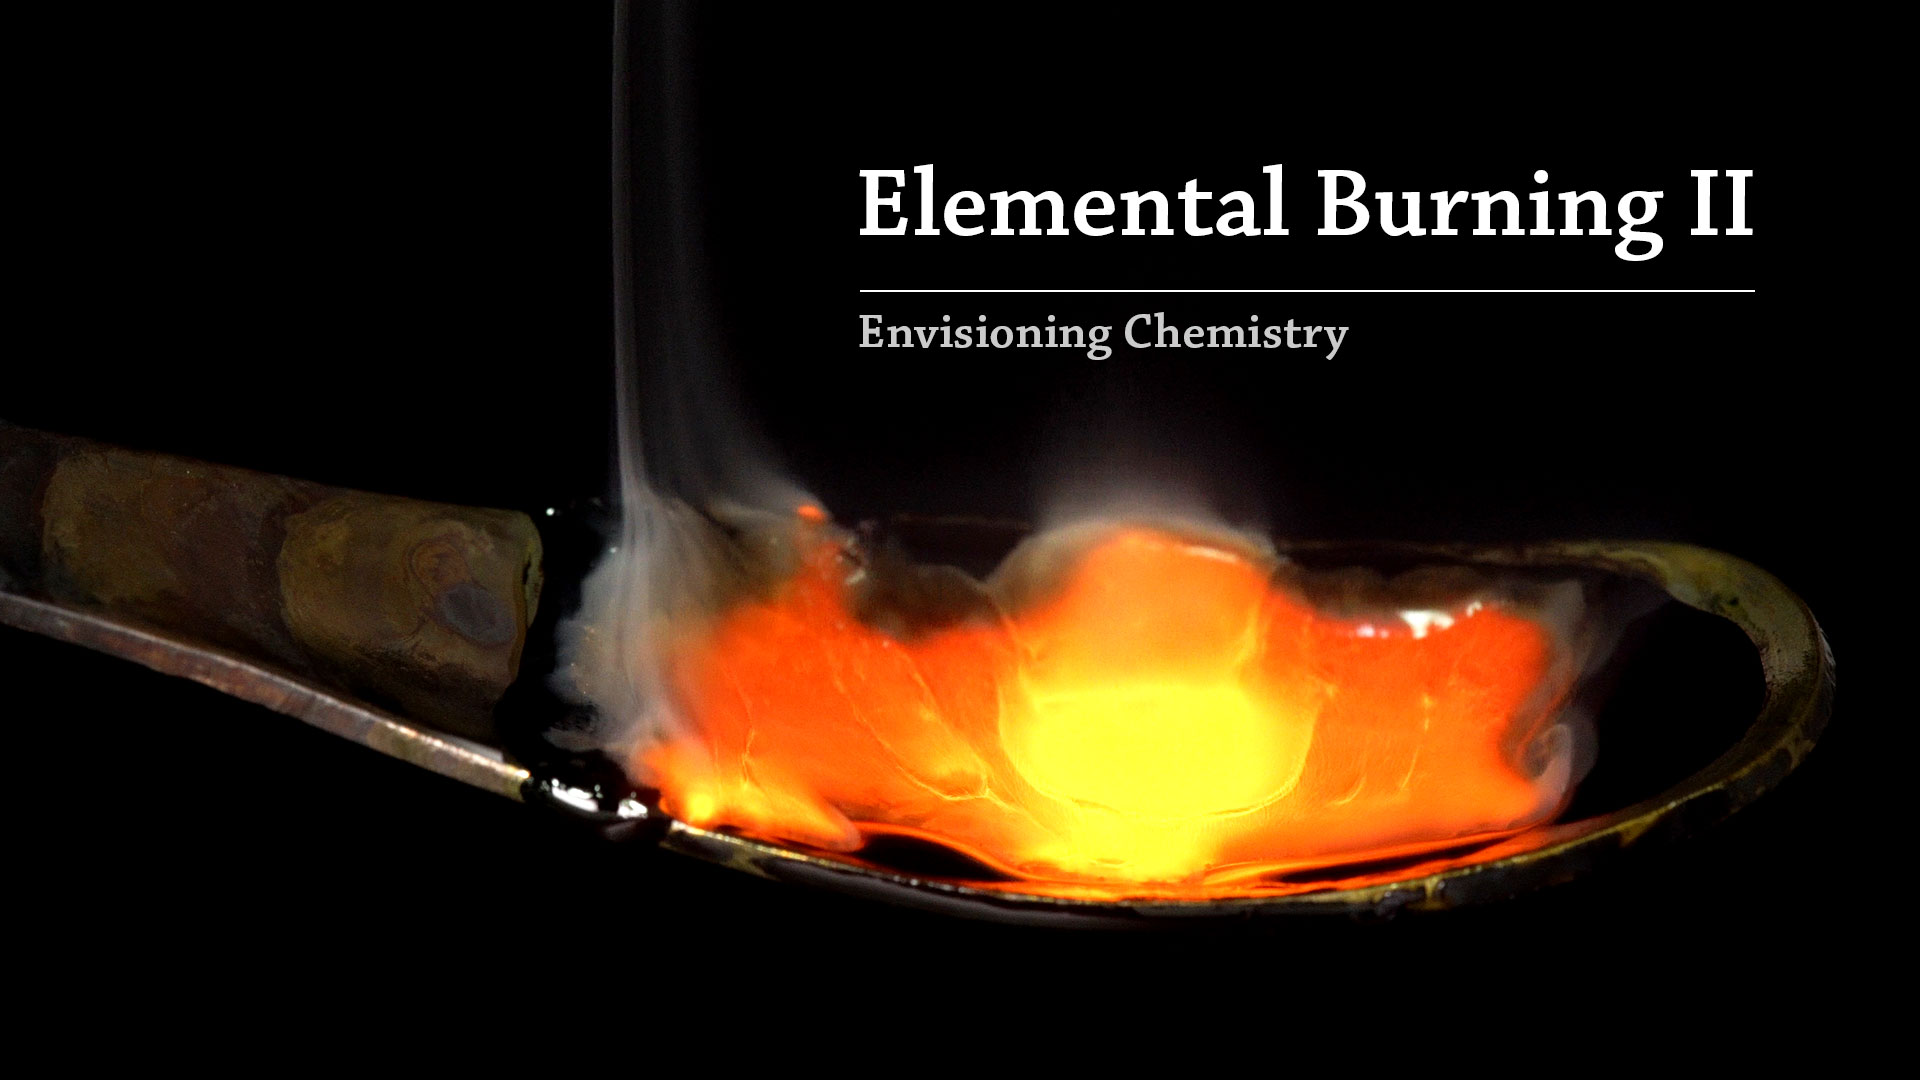 Elemental Burning II